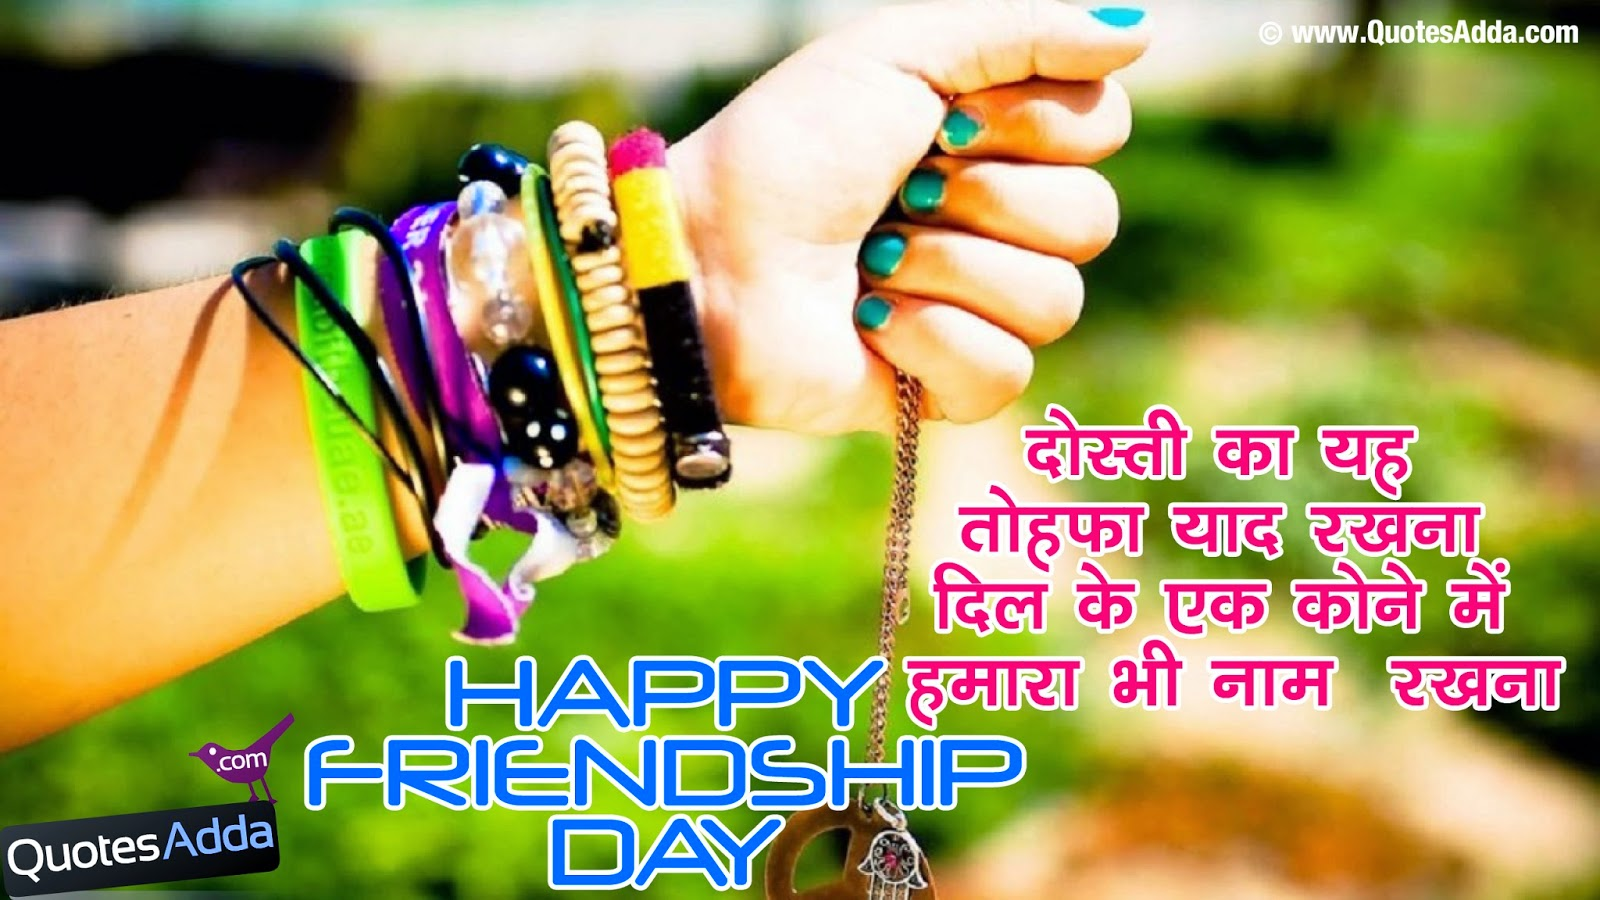 Top News Happy Friendship Day Msgs In Hindi Send Msg And Wish Ur